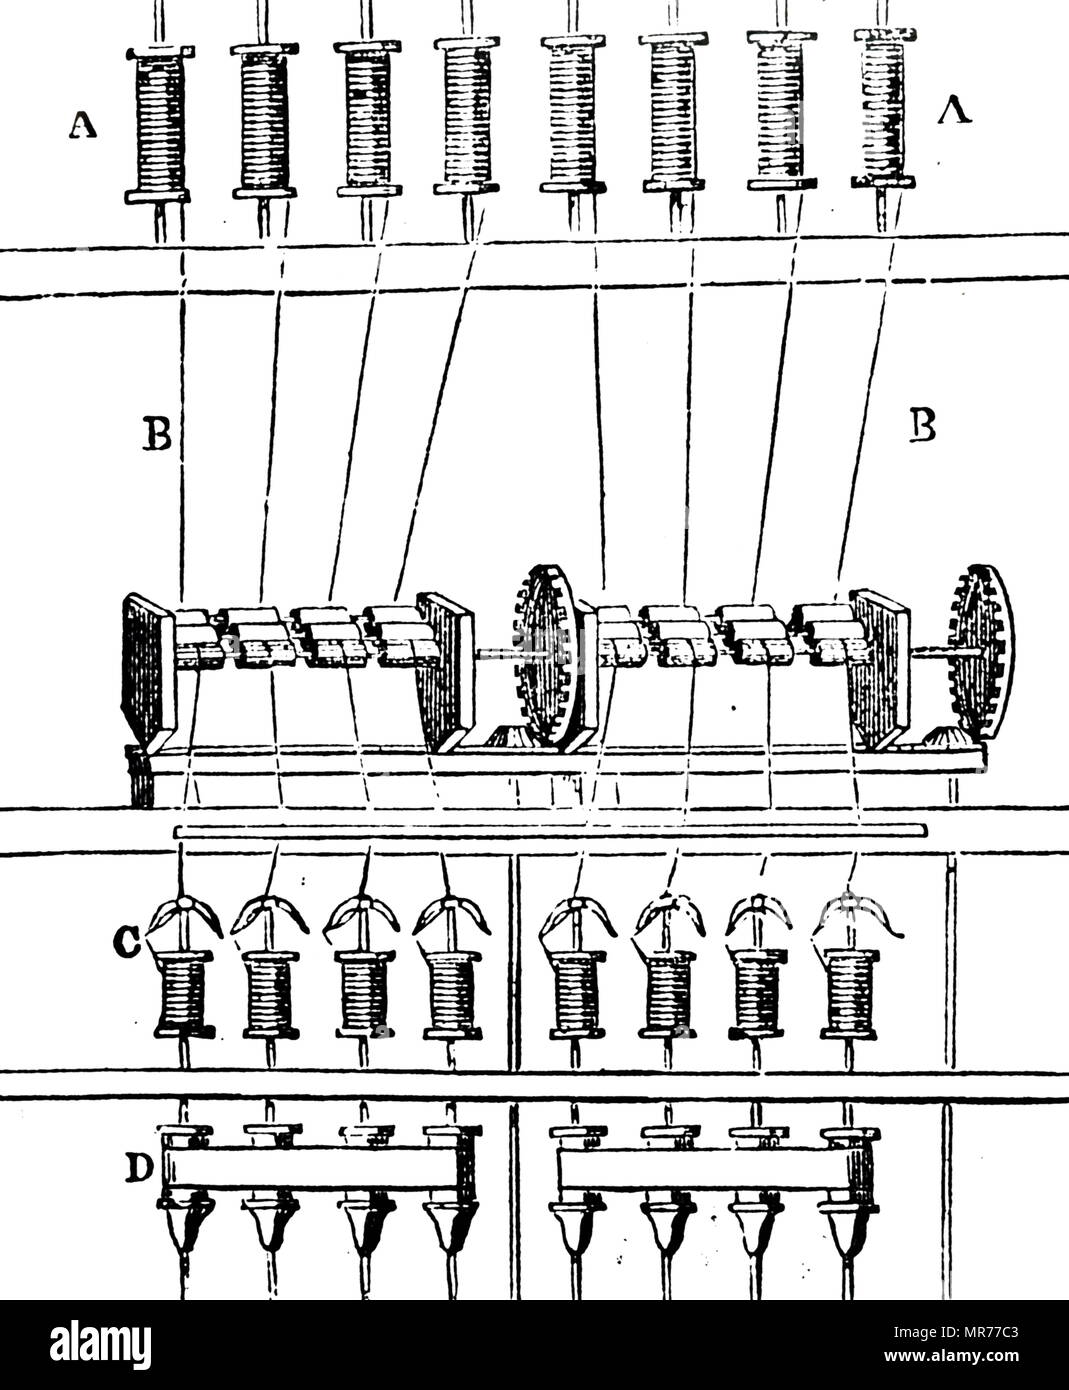 hight resolution of engraving depicting a diagram richard arkwright s water frame richard arkwright 1732 1792 an english inventor and a leading entrepreneur during the early